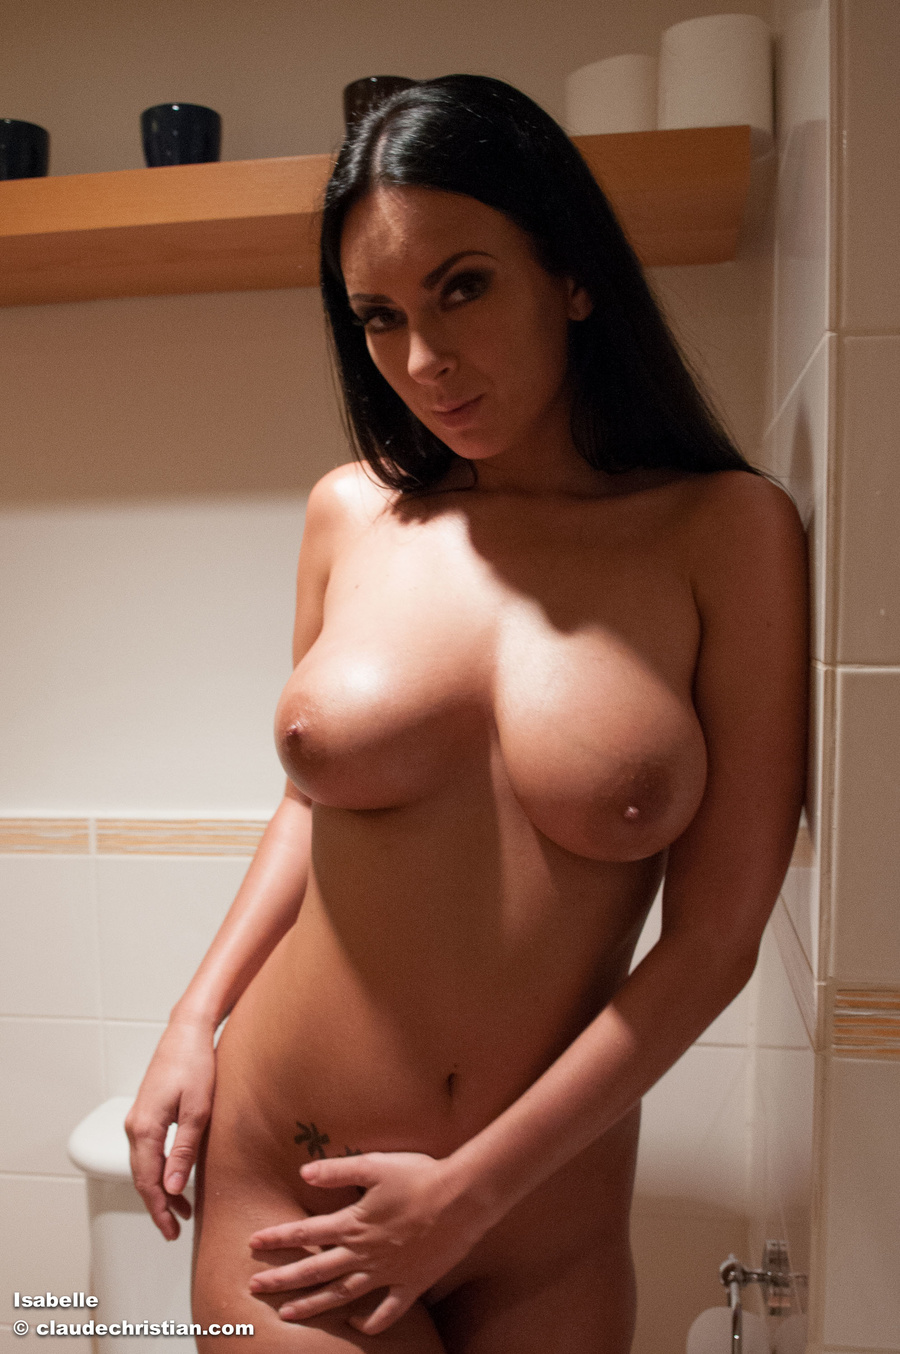 Understood busty brunette blowjob bathroom